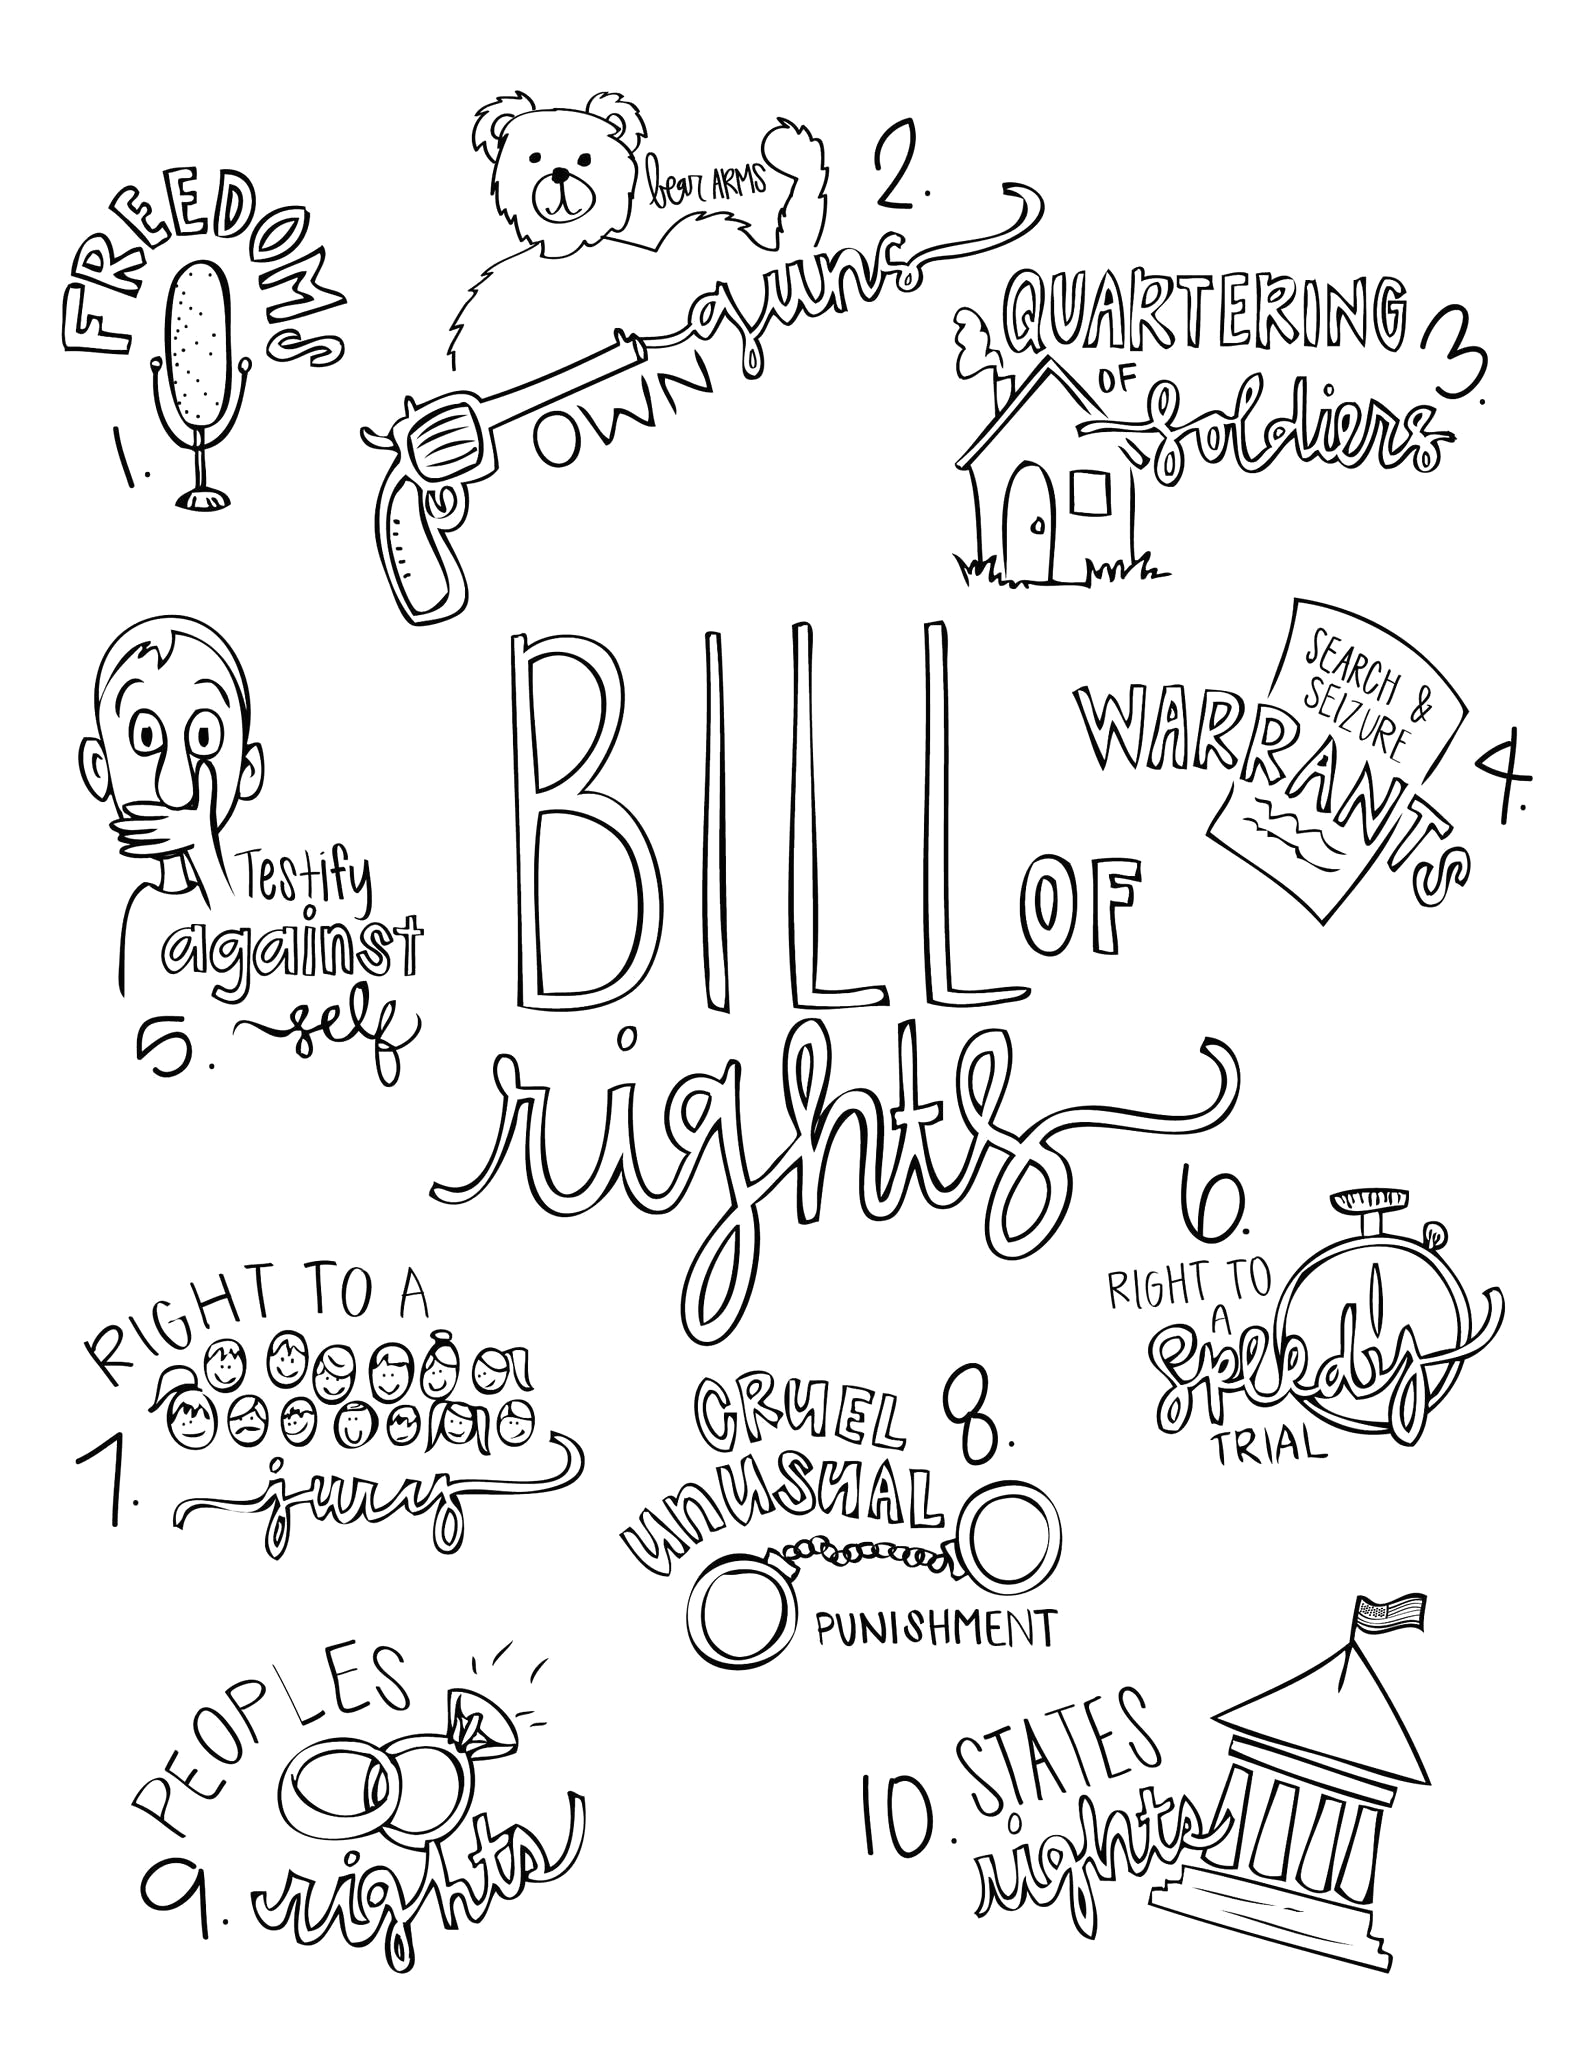 Bill Of Rights Coloring Pages for Kids Color the Preamble and Bill Of Rights